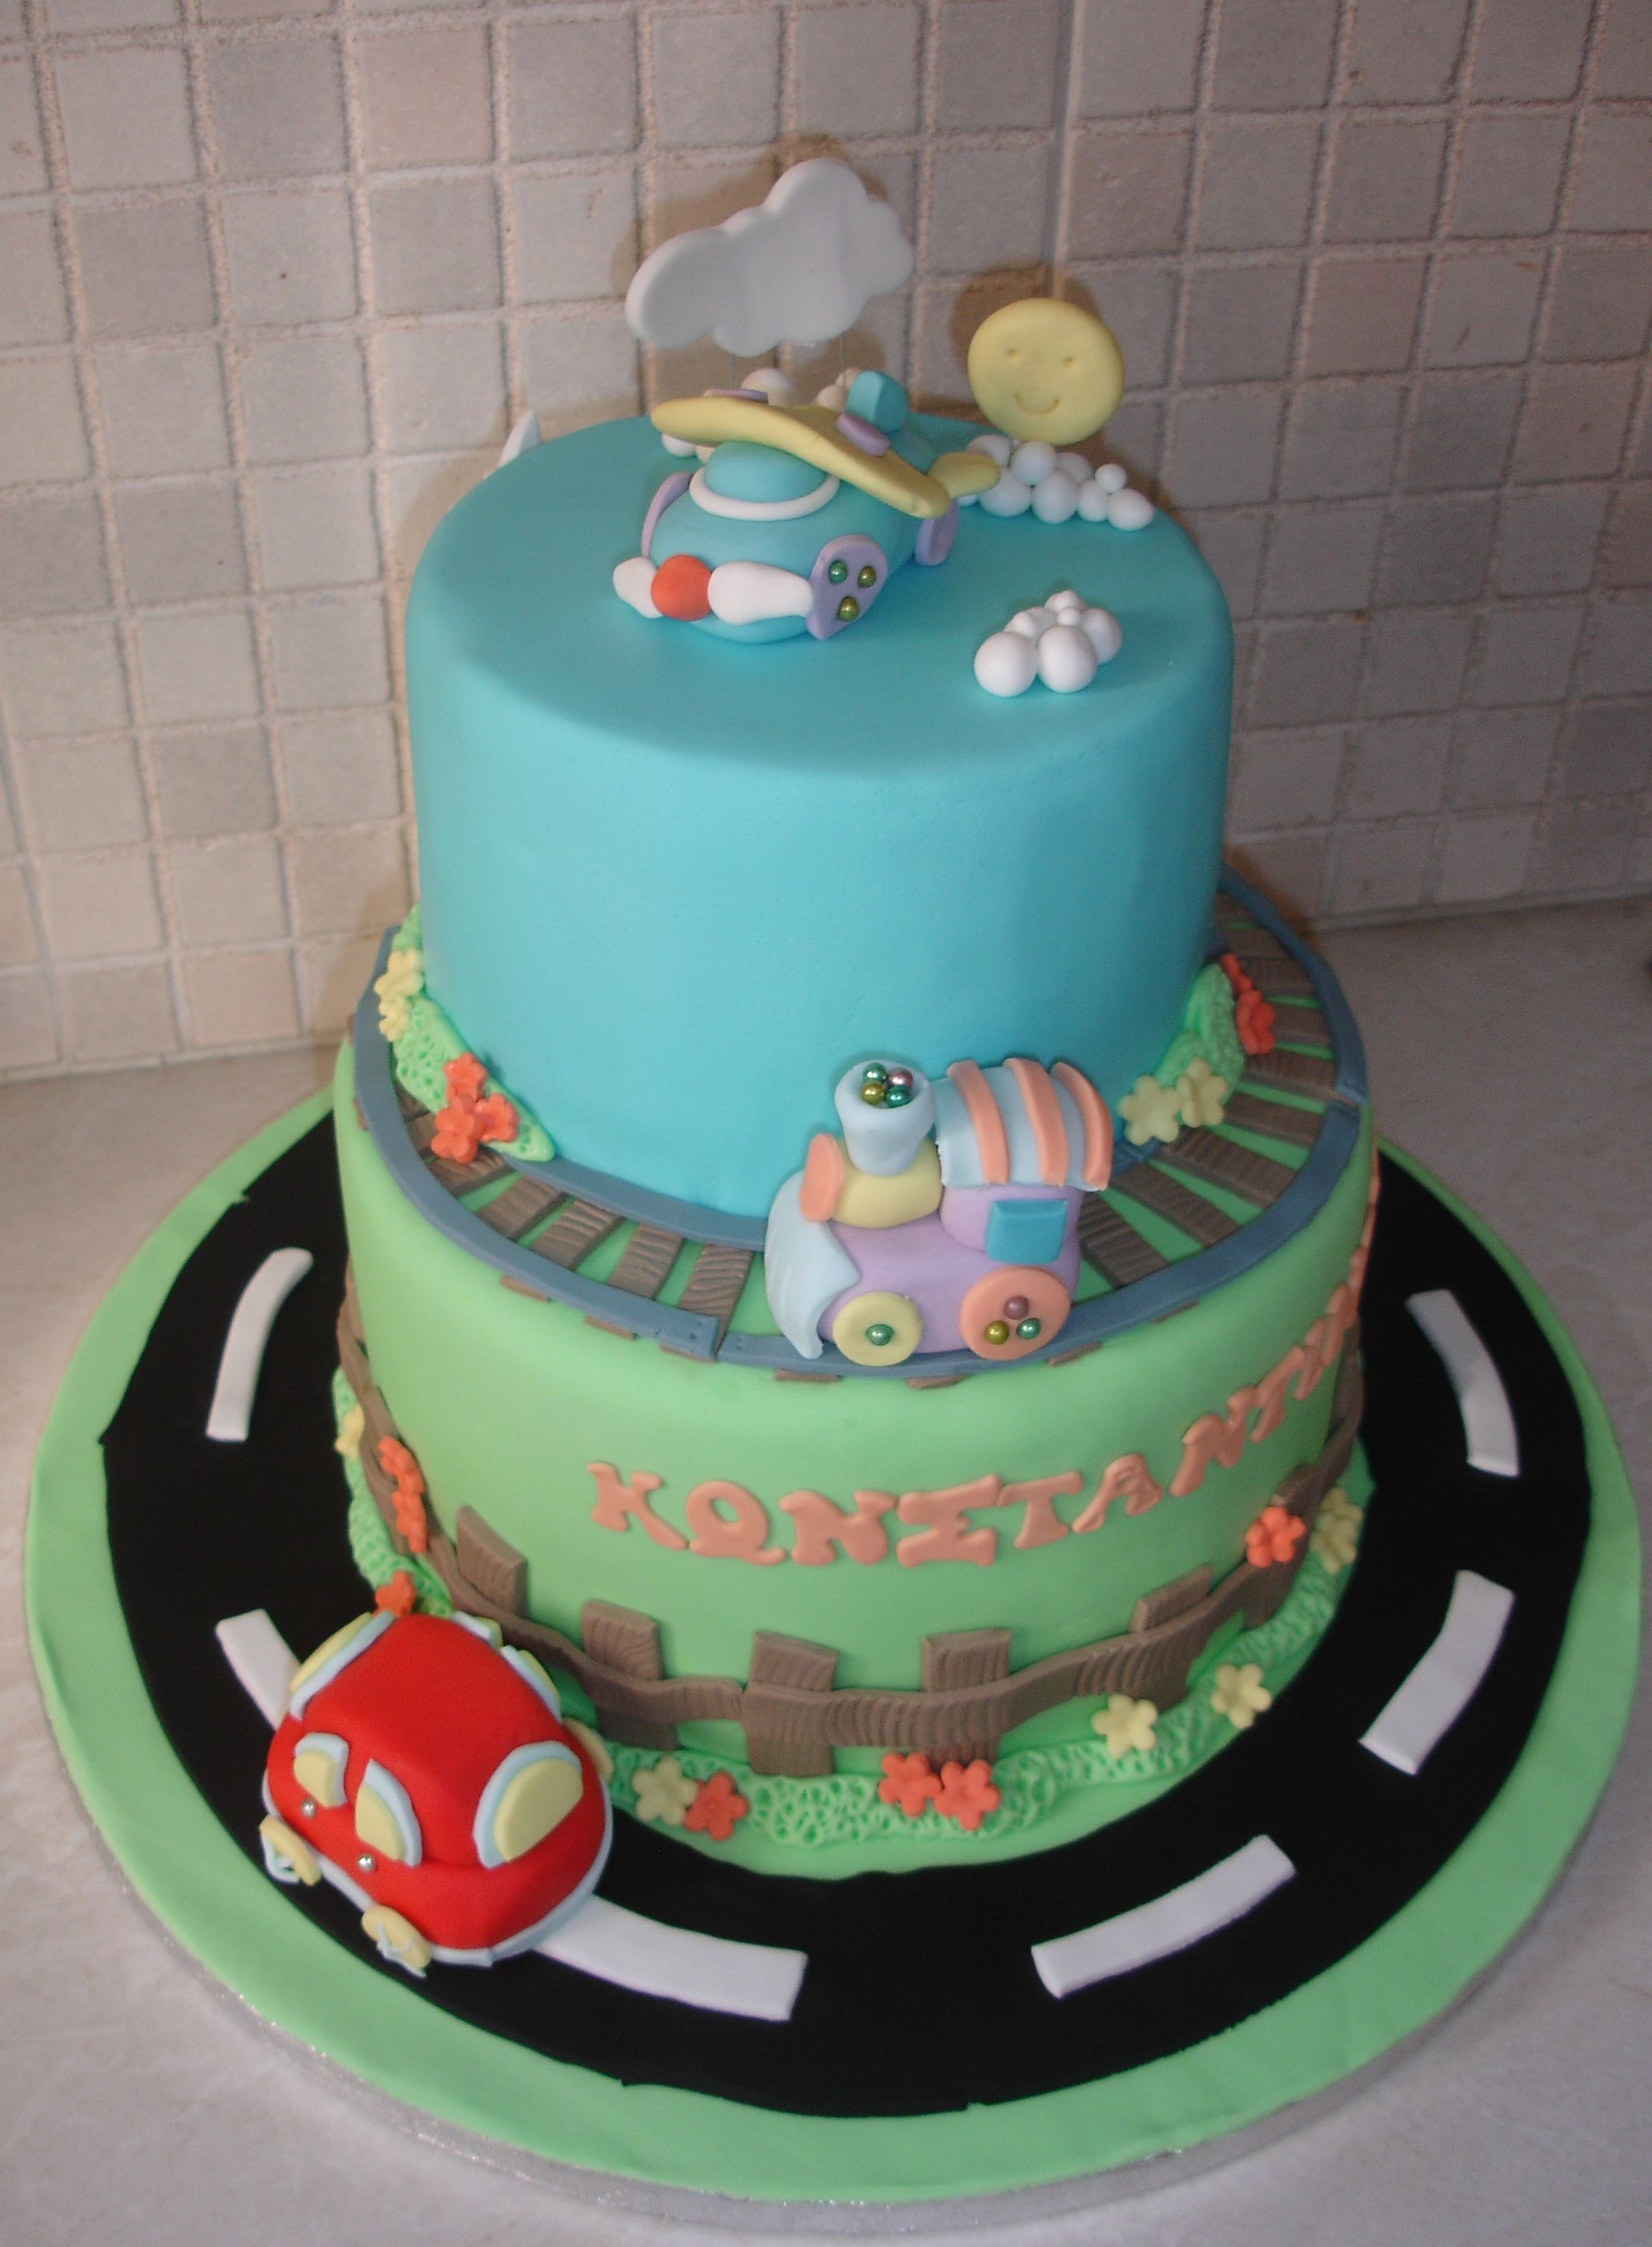 - Cake with a car,train and airplane for Constantinos 3rd bday party. All hand made and edible! *for simplicity replace the fondant car/train and plane with toys.